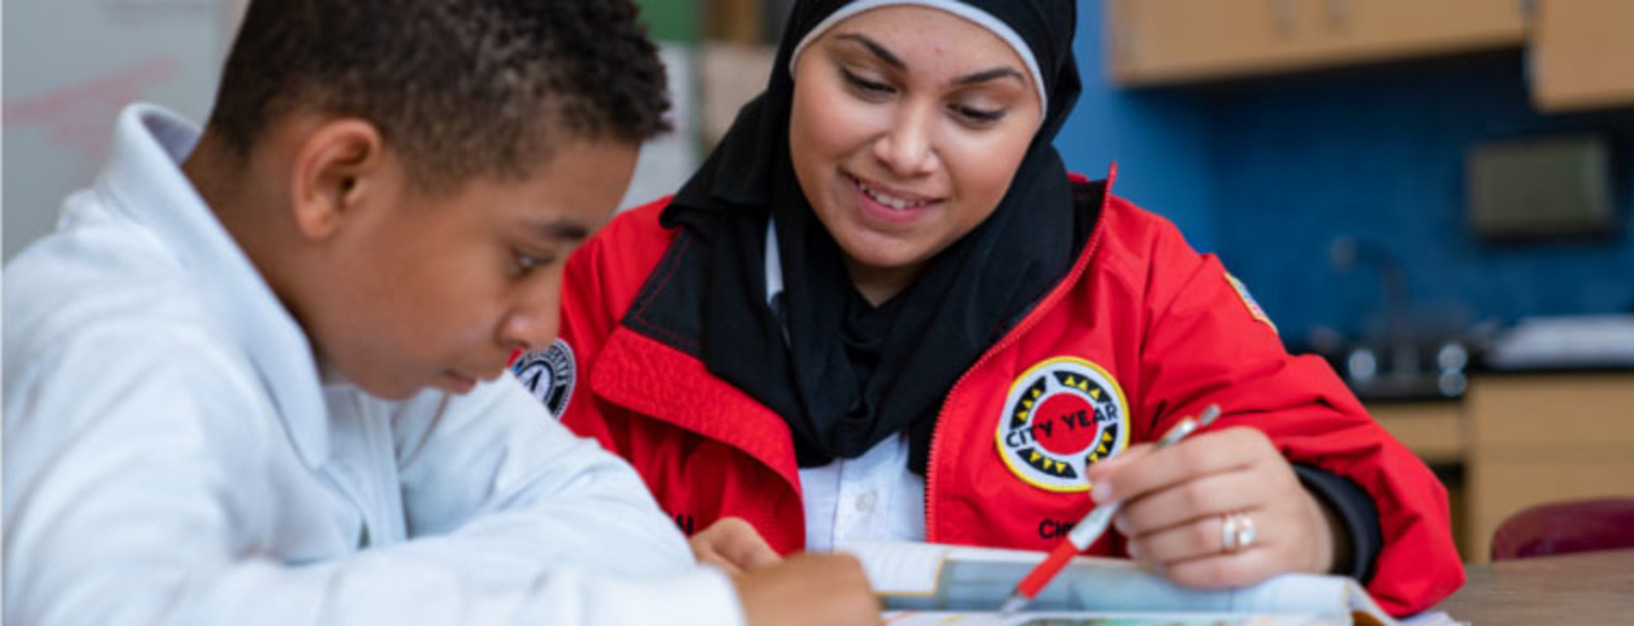 City year teaching child goal2